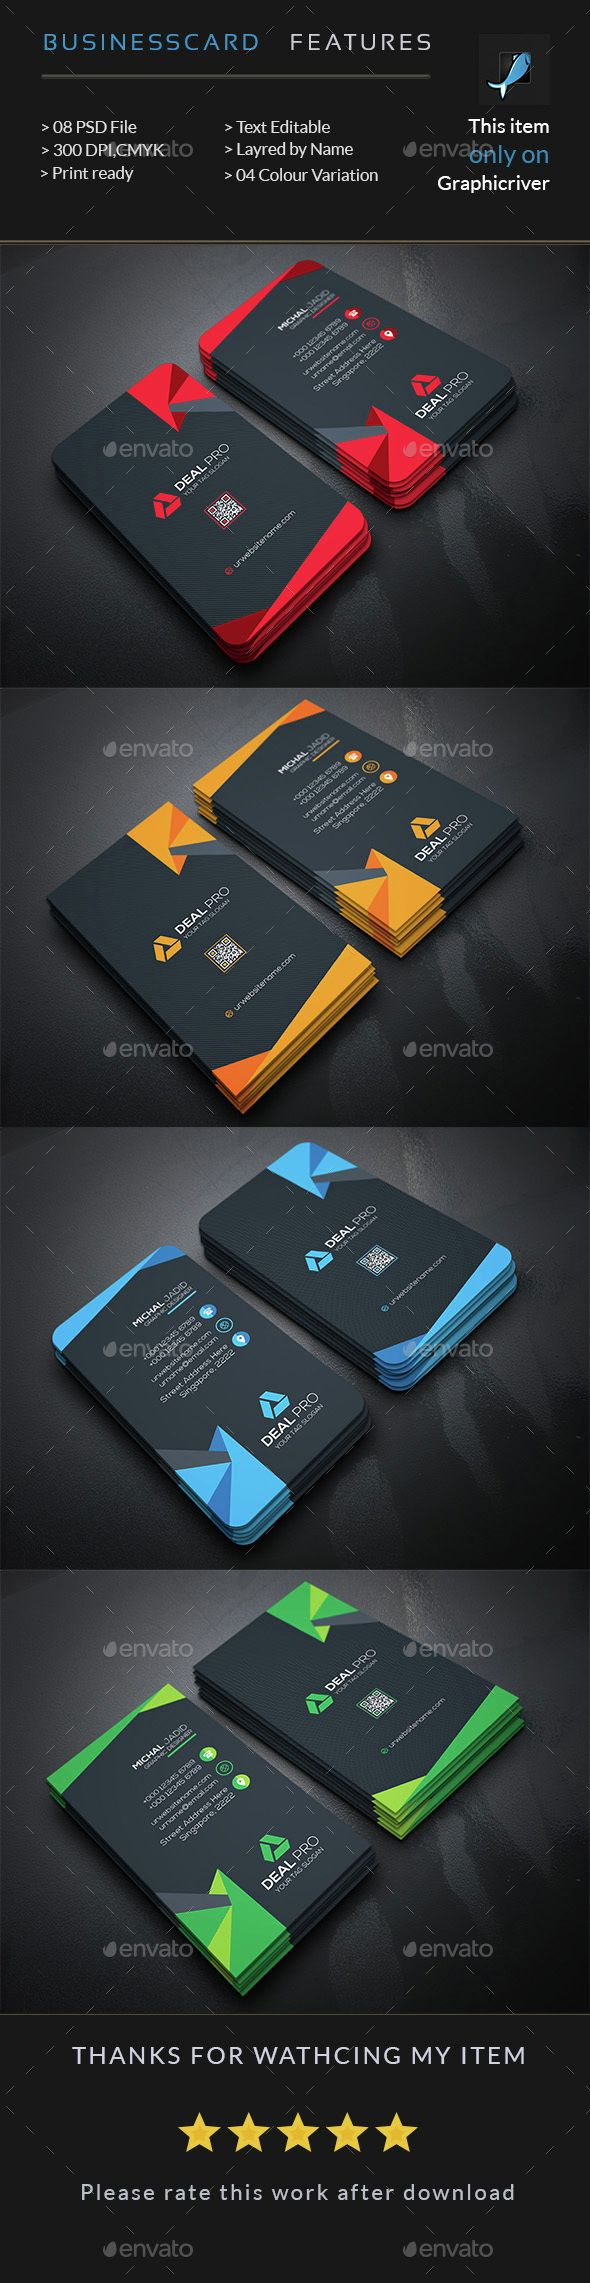 Unique Business Card Template PSD. Download here: http://graphicriver.net/item/business-card/15120003?ref=ksioks